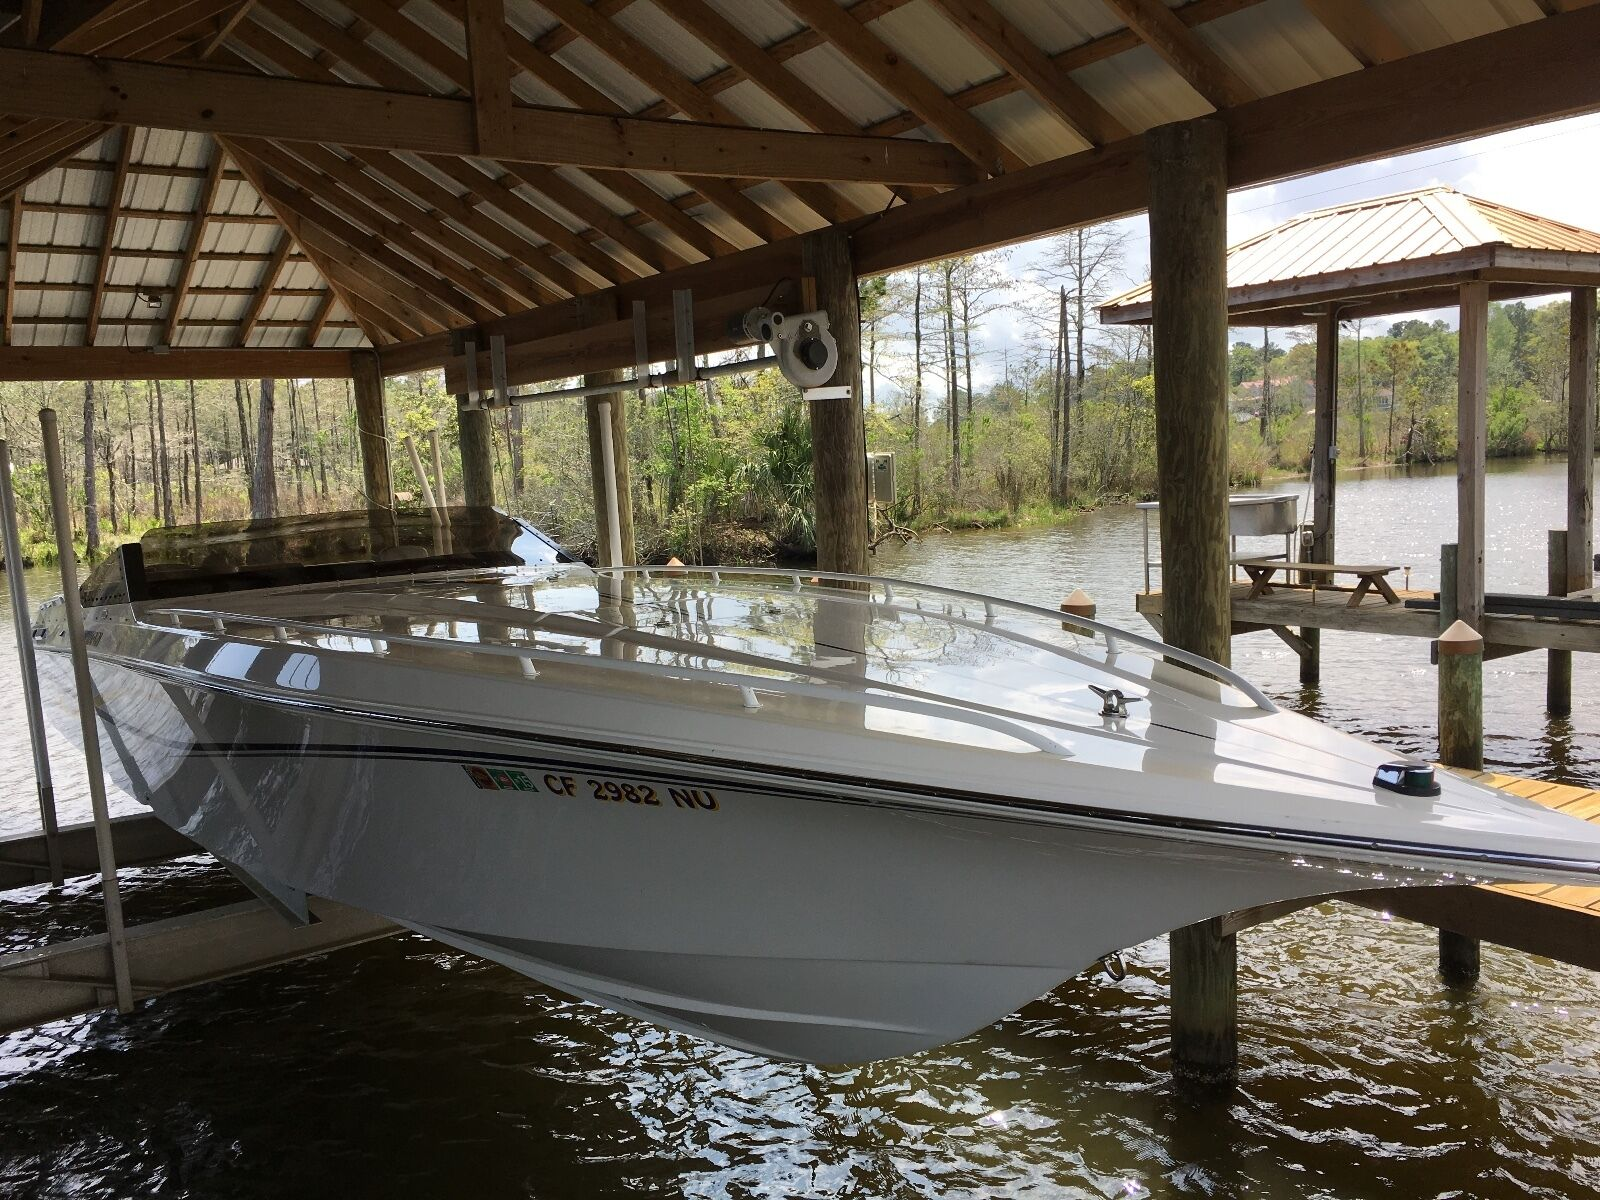 38' fountain fever offshore perfomance super clean like new